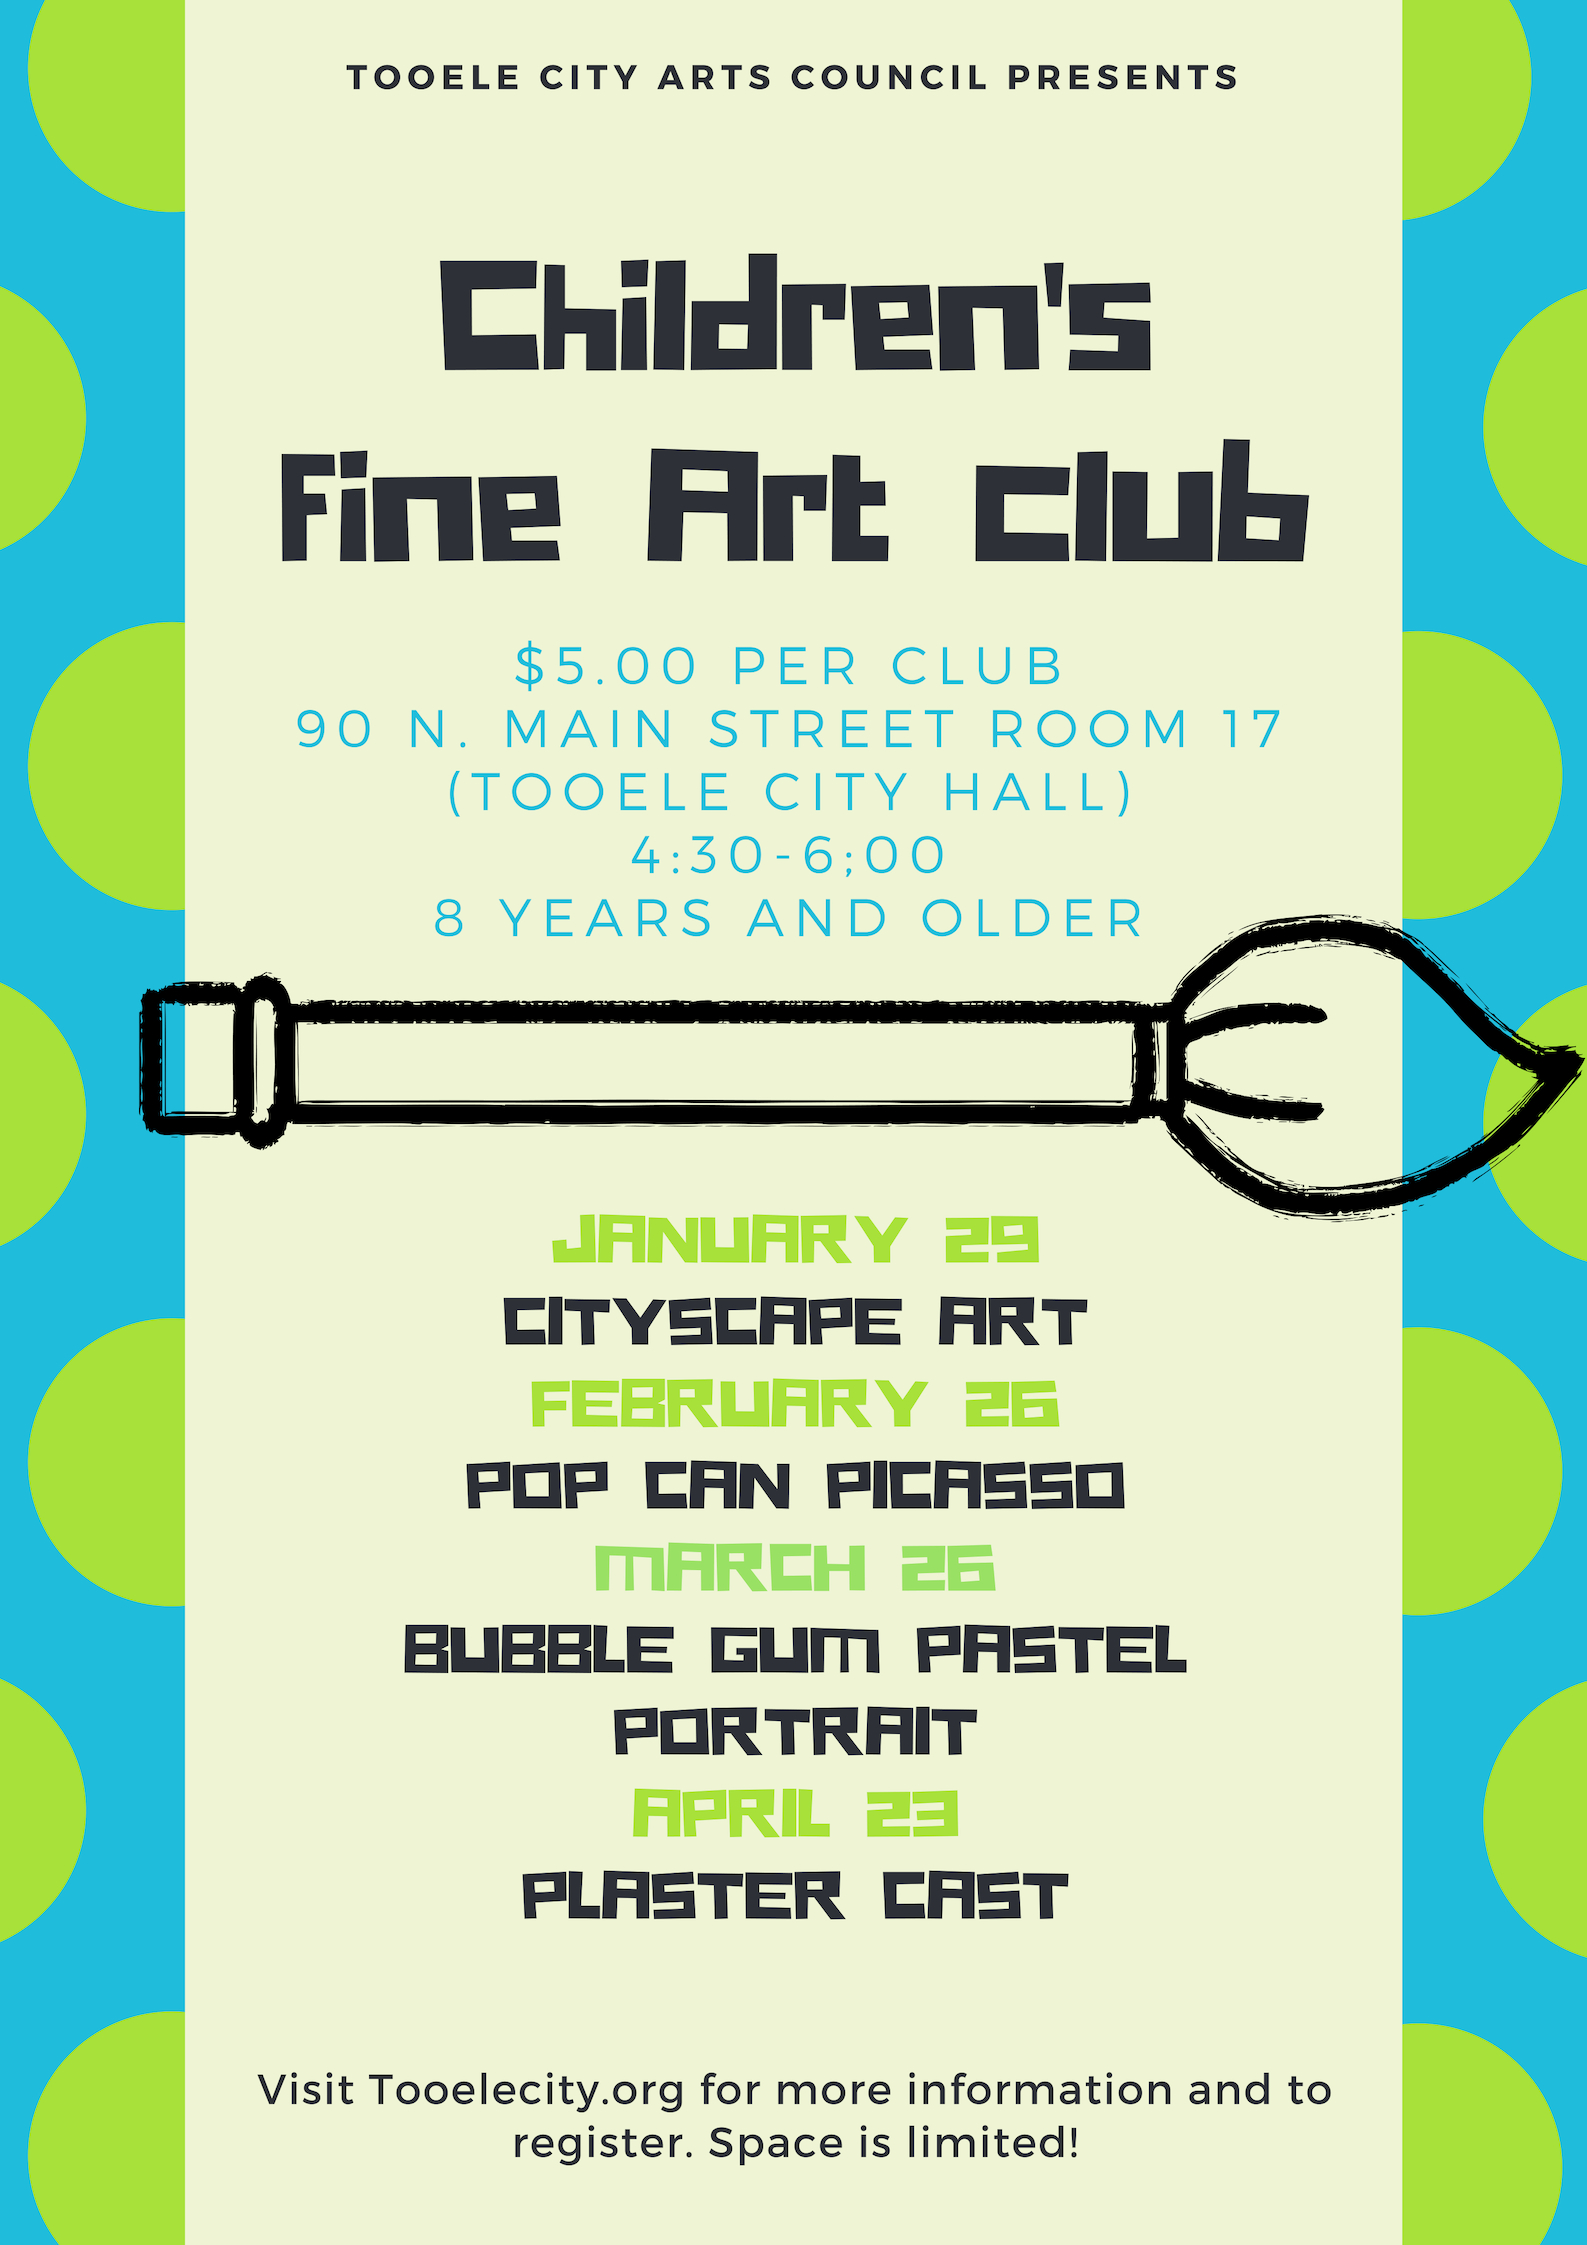 Children's Fine Art Club: Cityscape Art @ Tooele City Hall | Tooele | Utah | United States